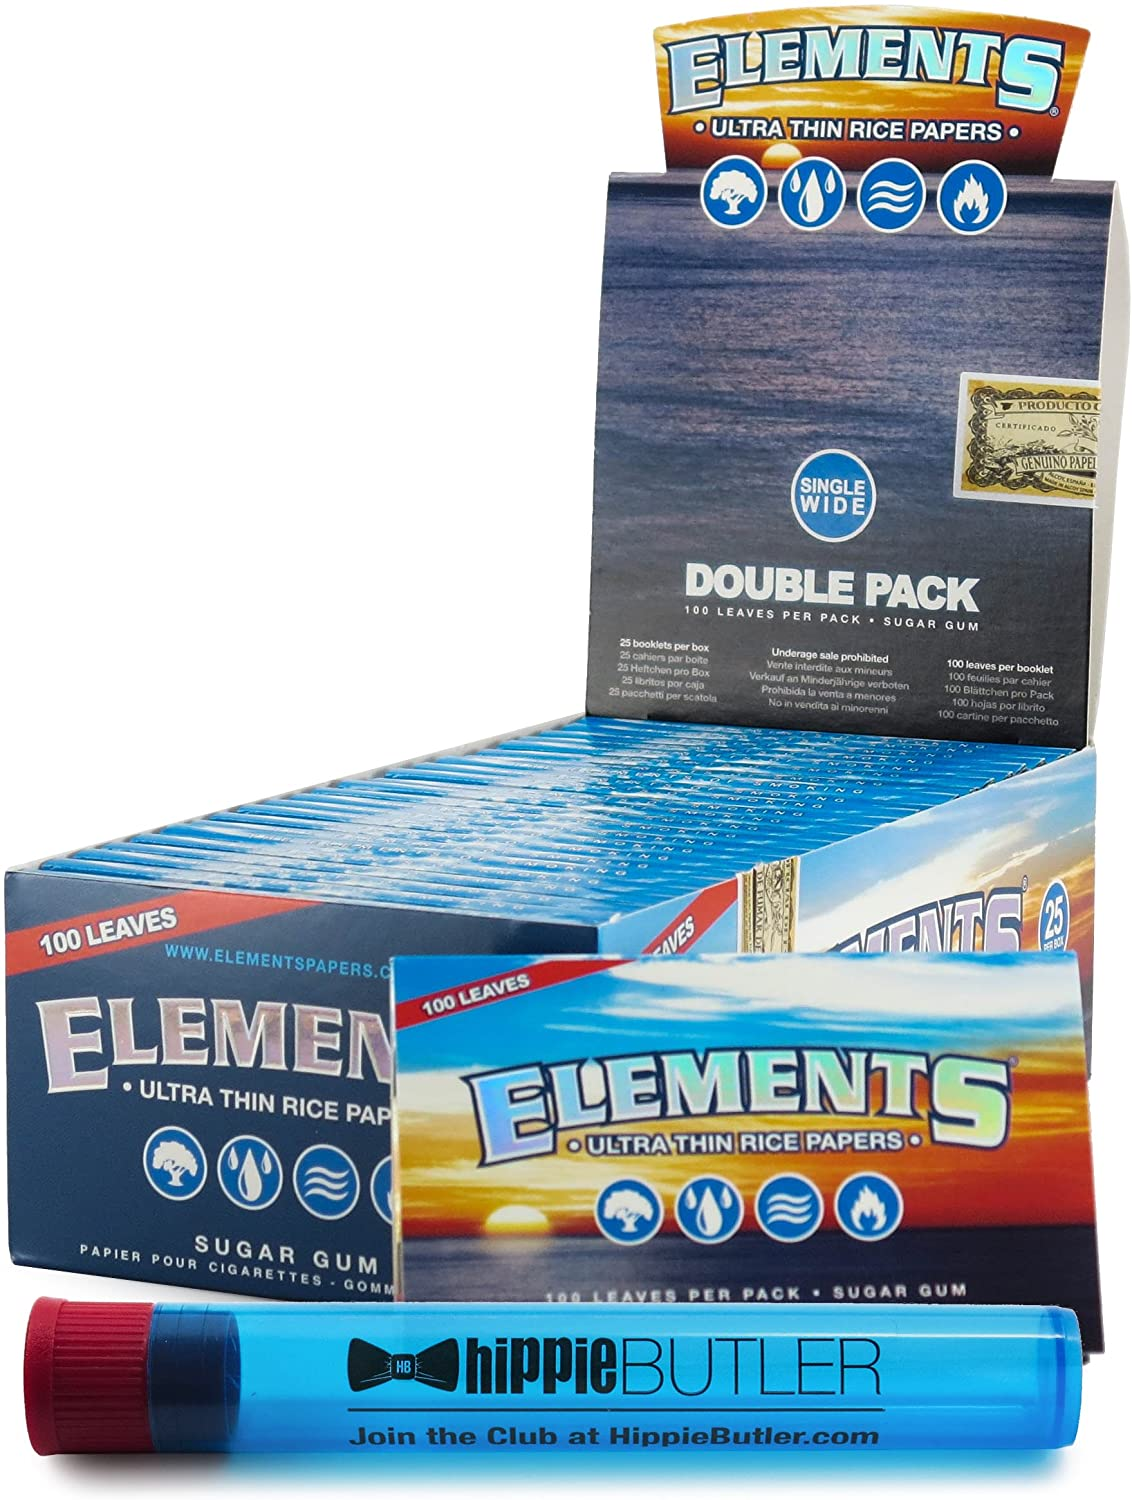 Elements Single Wide Rolling Papers (25 Packs/Box) with Hippie Butler KewlTube